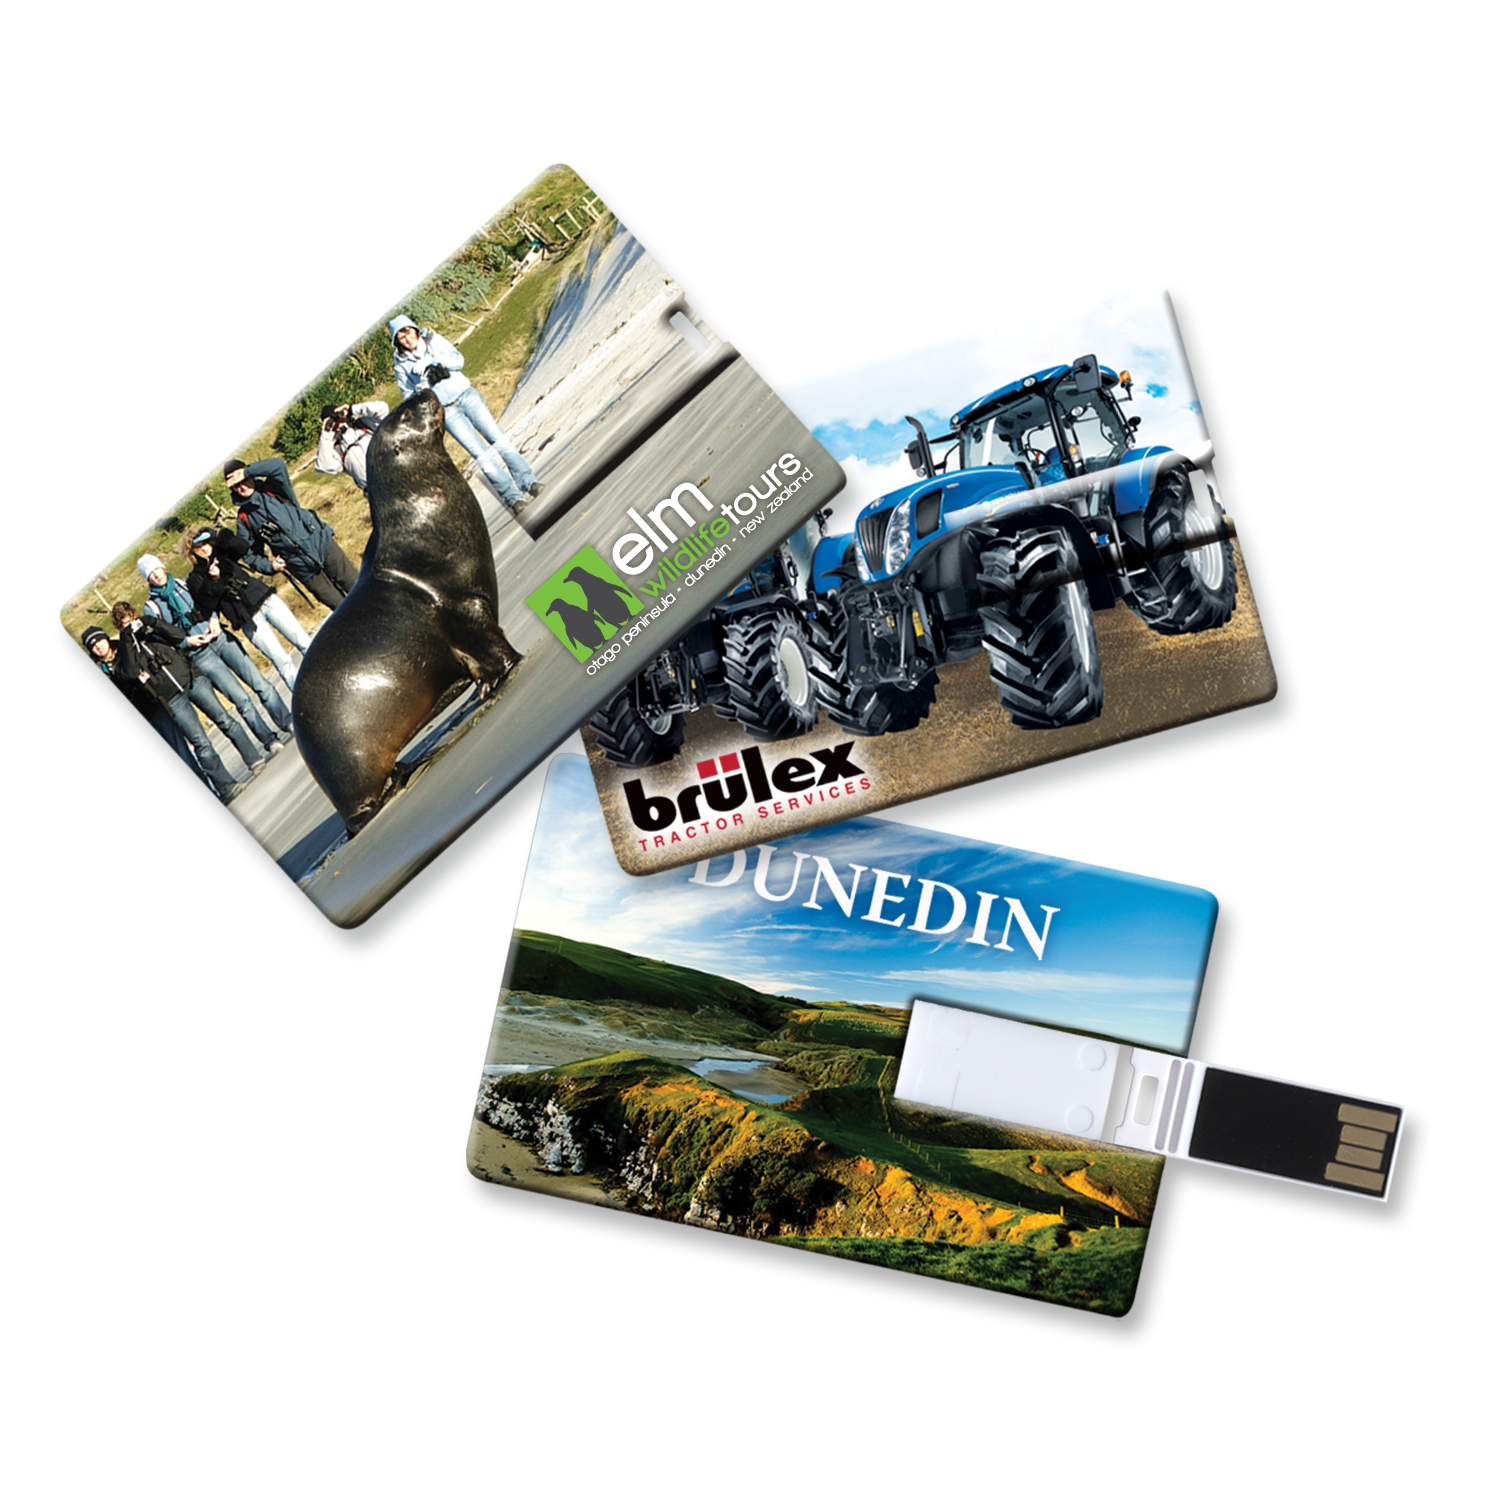 Easy2c solutions for business credit card flash drive 8gb high res image reheart Image collections